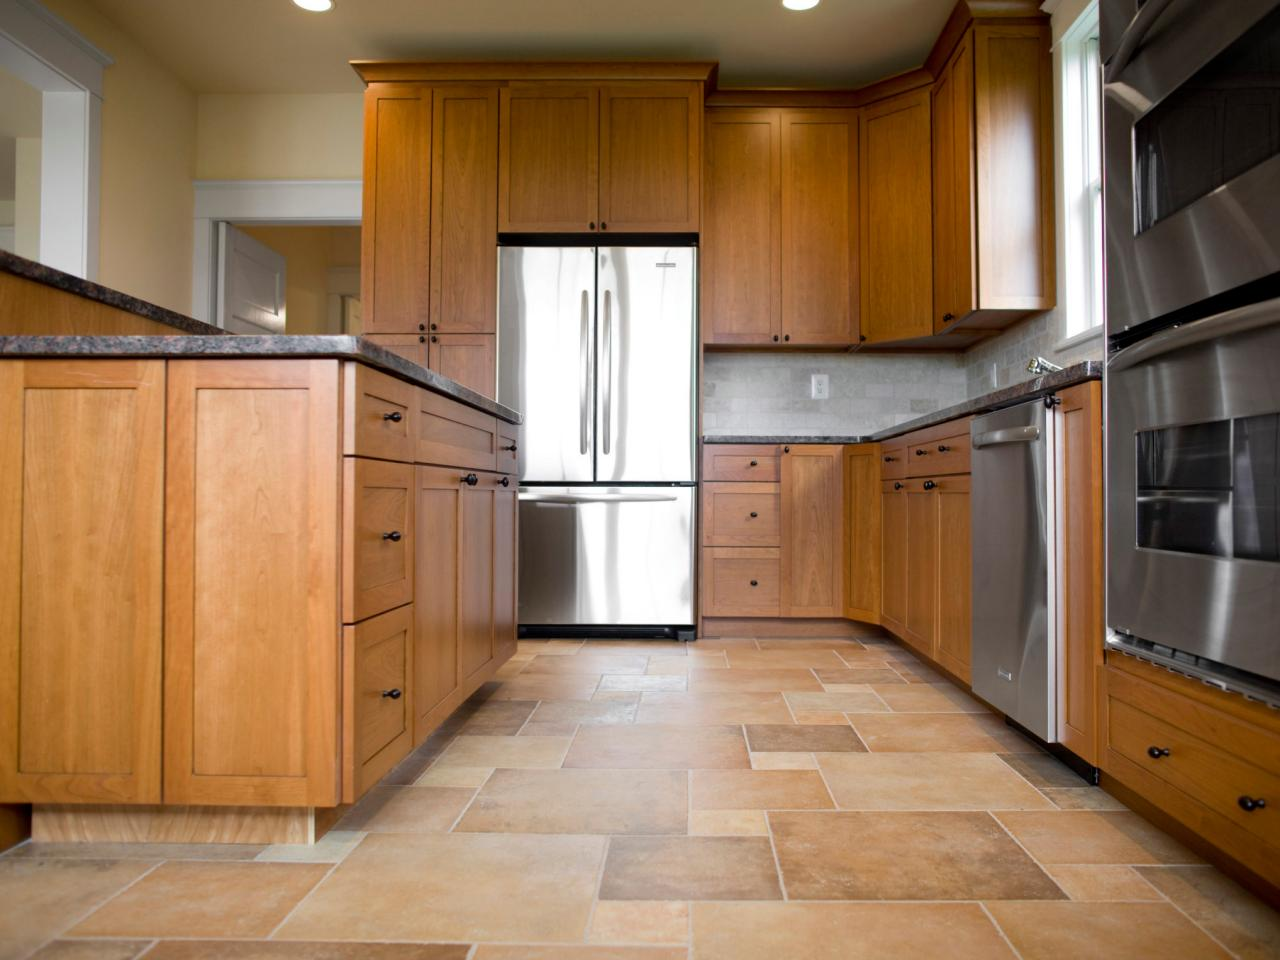 Collection kitchen flooring ideas related to: kitchen floors ... edhcbch